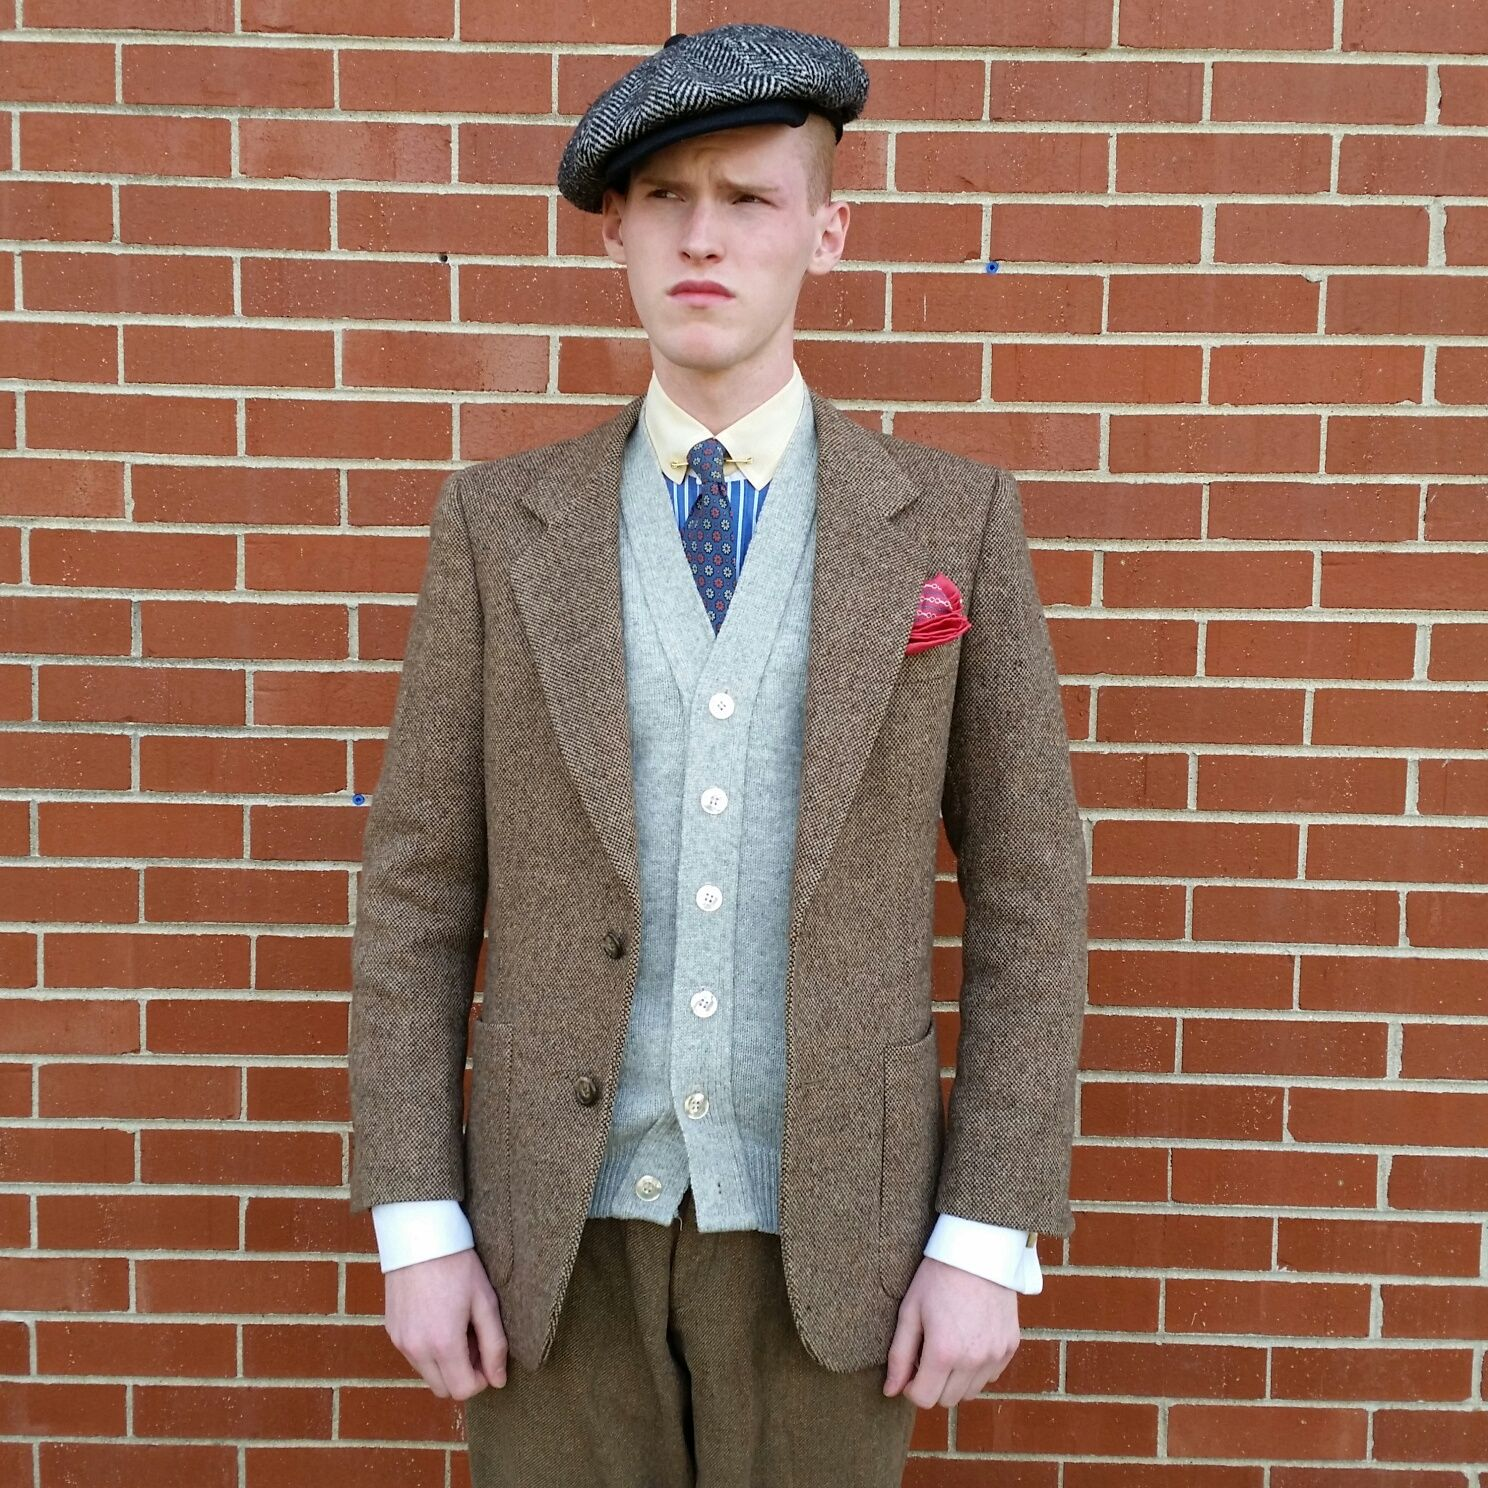 Closer view of the jacket, sweater, and flat cap. Shirt is blue cotton with white and blue stripes, as well as white French cuffs.